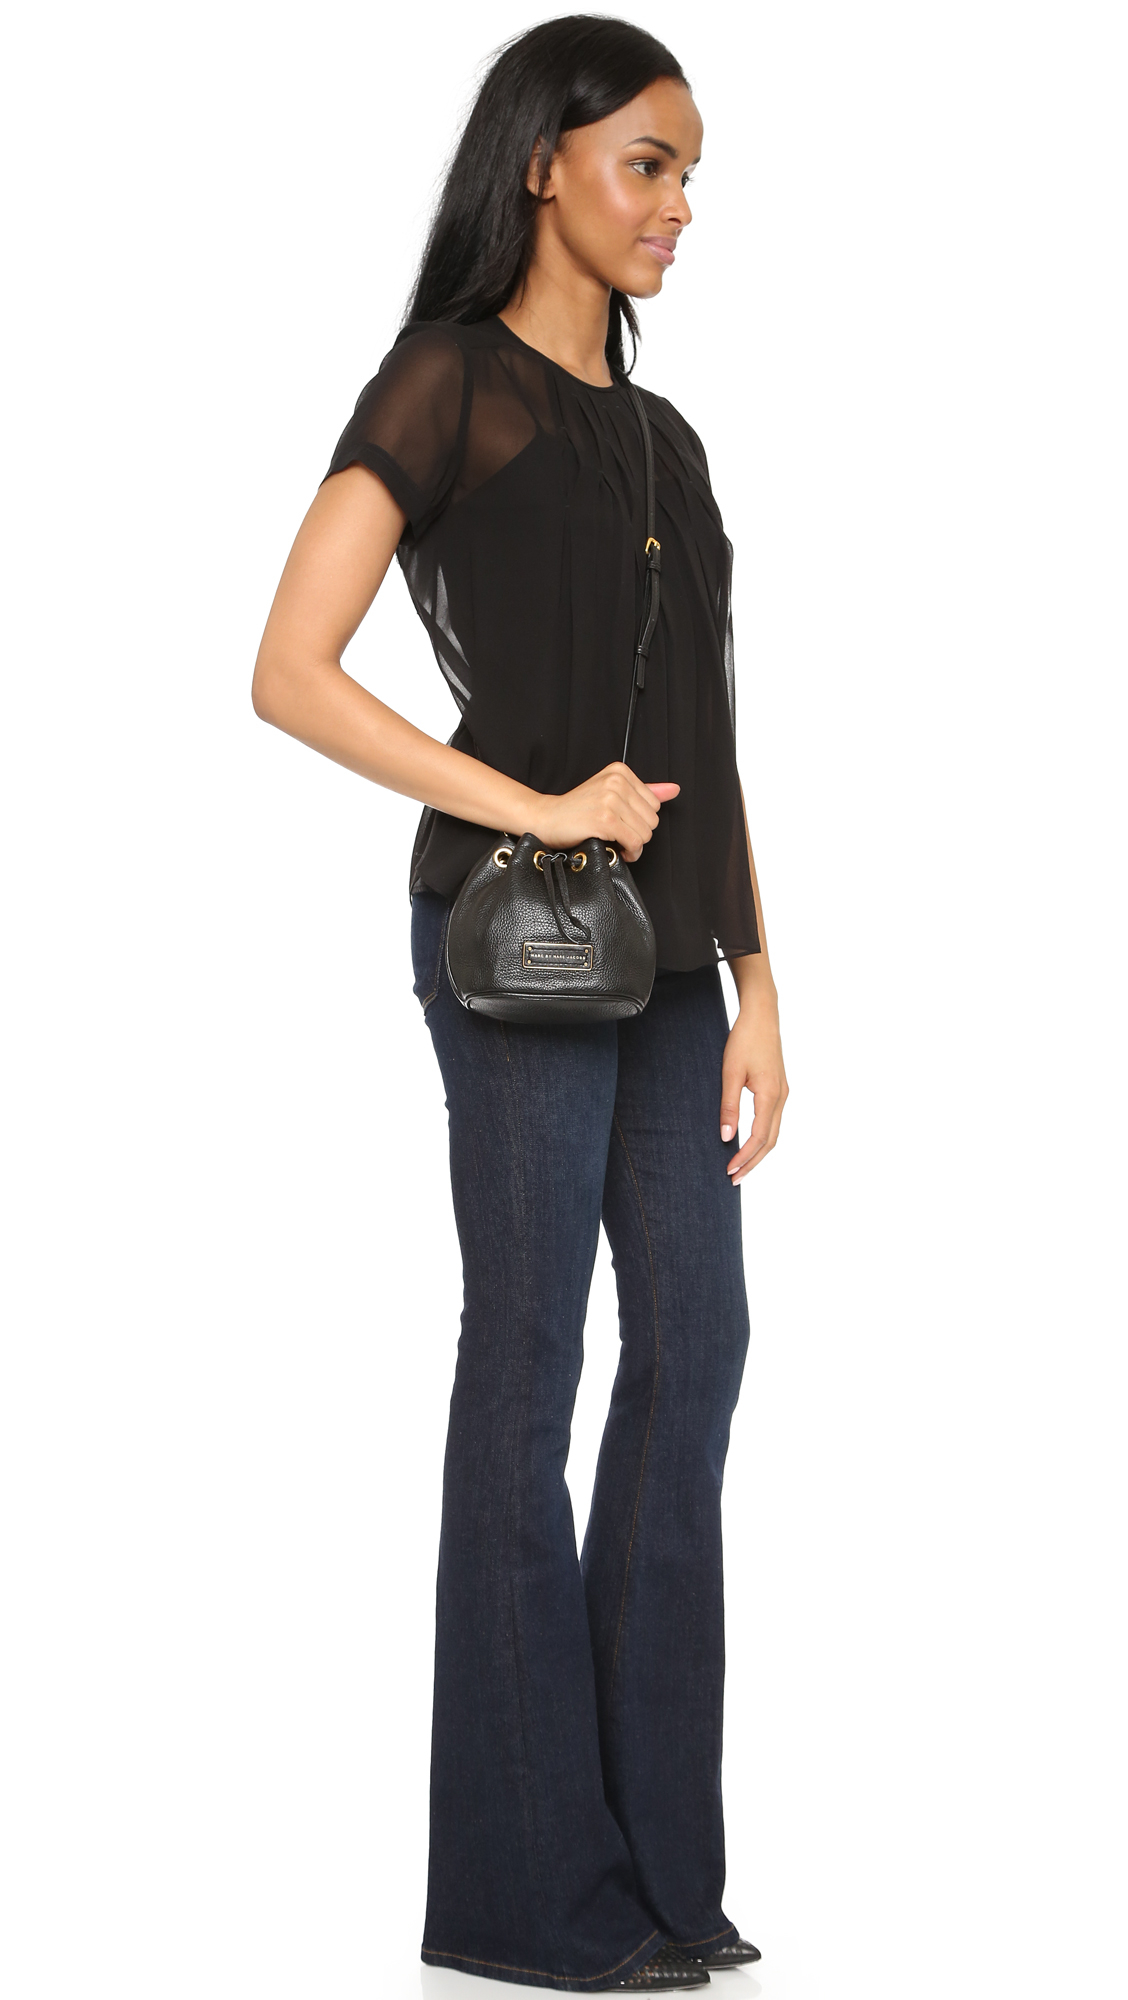 cbf893d60 Gallery. Previously sold at: Shopbop · Women's Marc Jacobs Too Hot To Handle  Bags